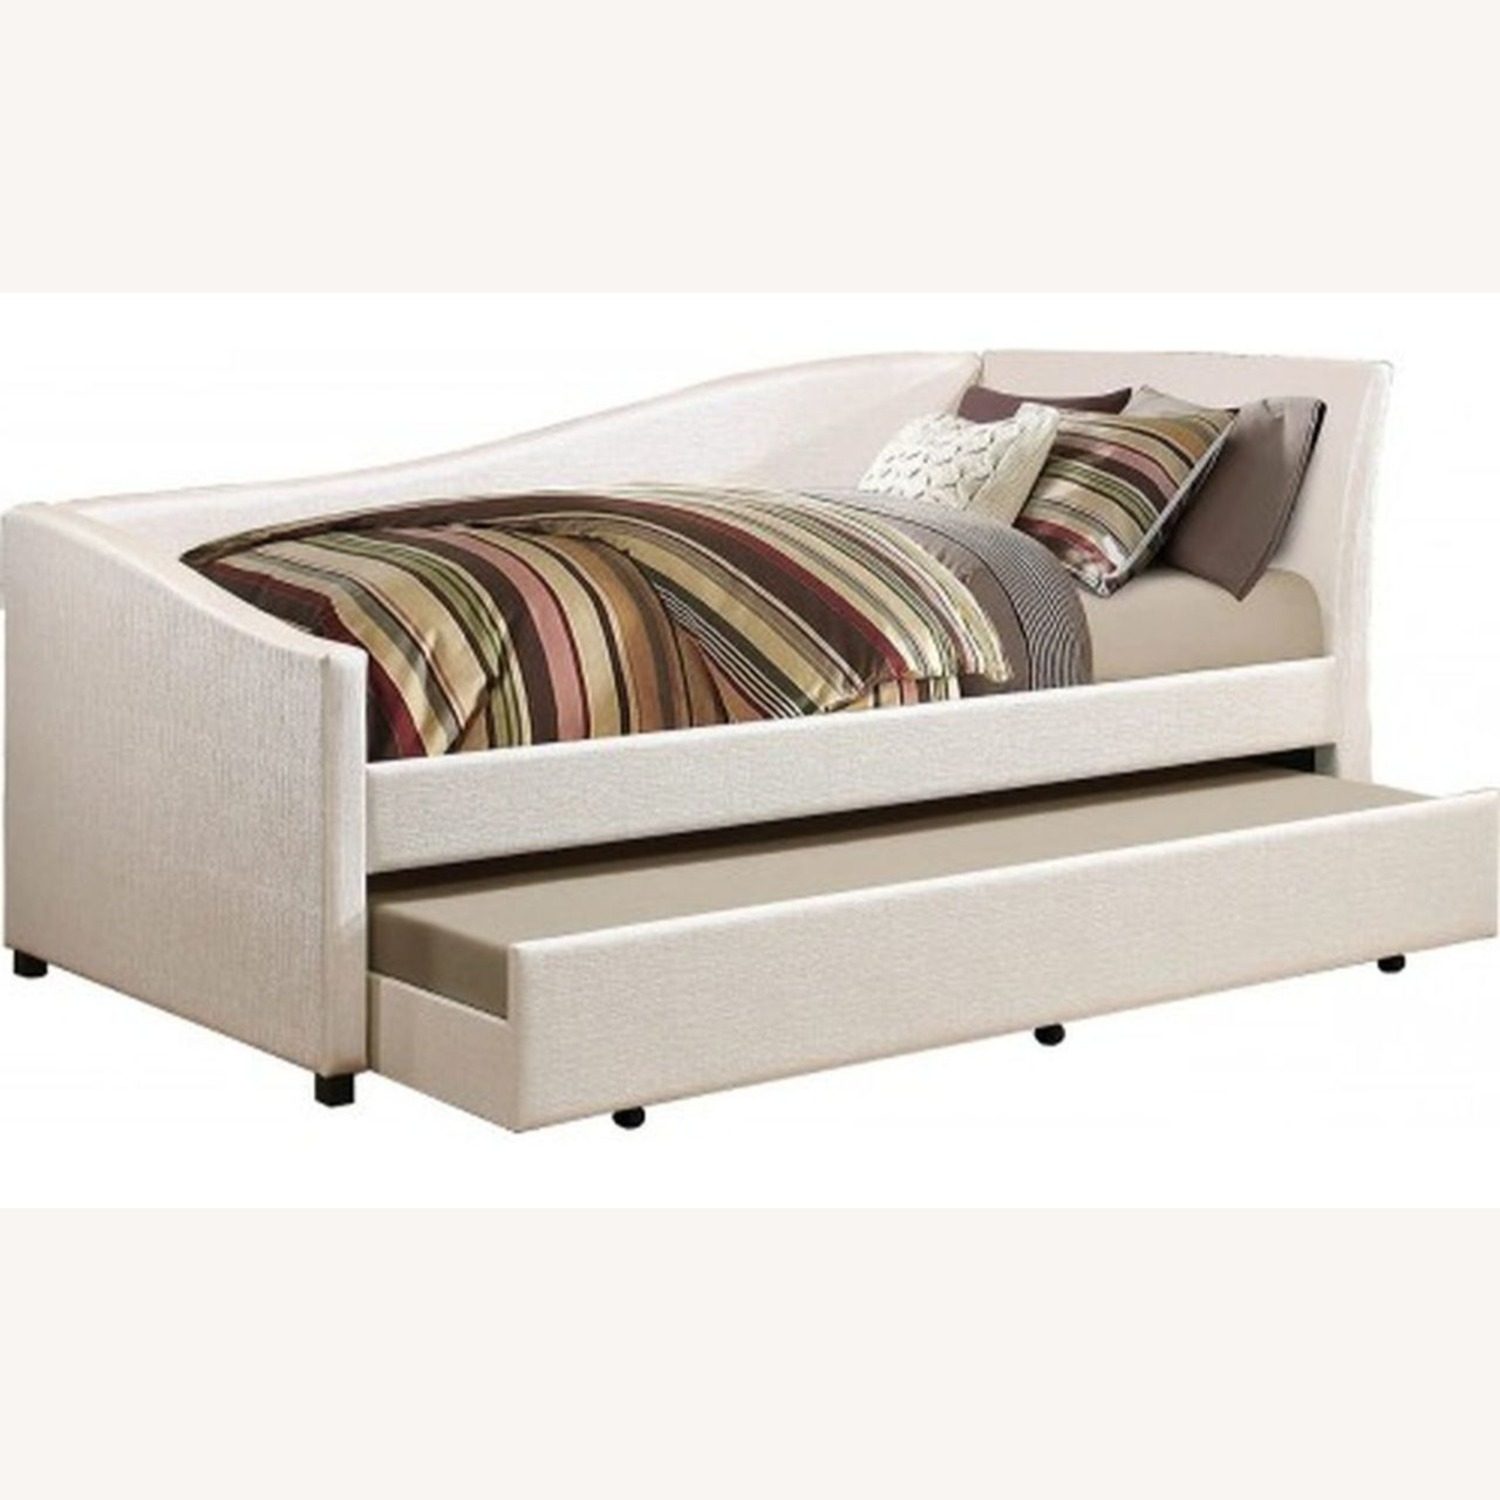 Twin Daybed In Ivory Leatherette W Trundle - image-0